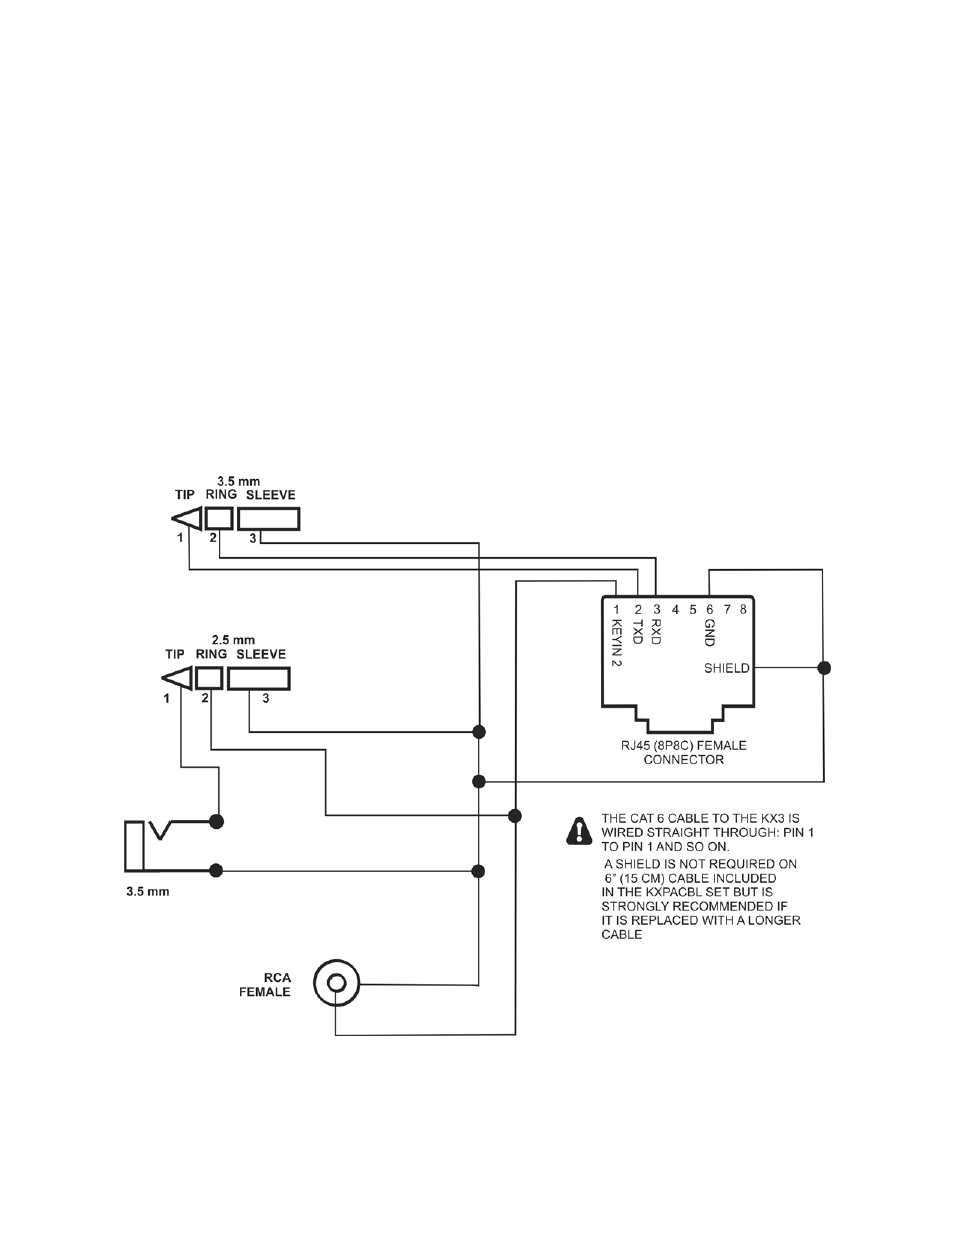 Cable schematics | Elecraft KXPA100 Manual User Manual ... on